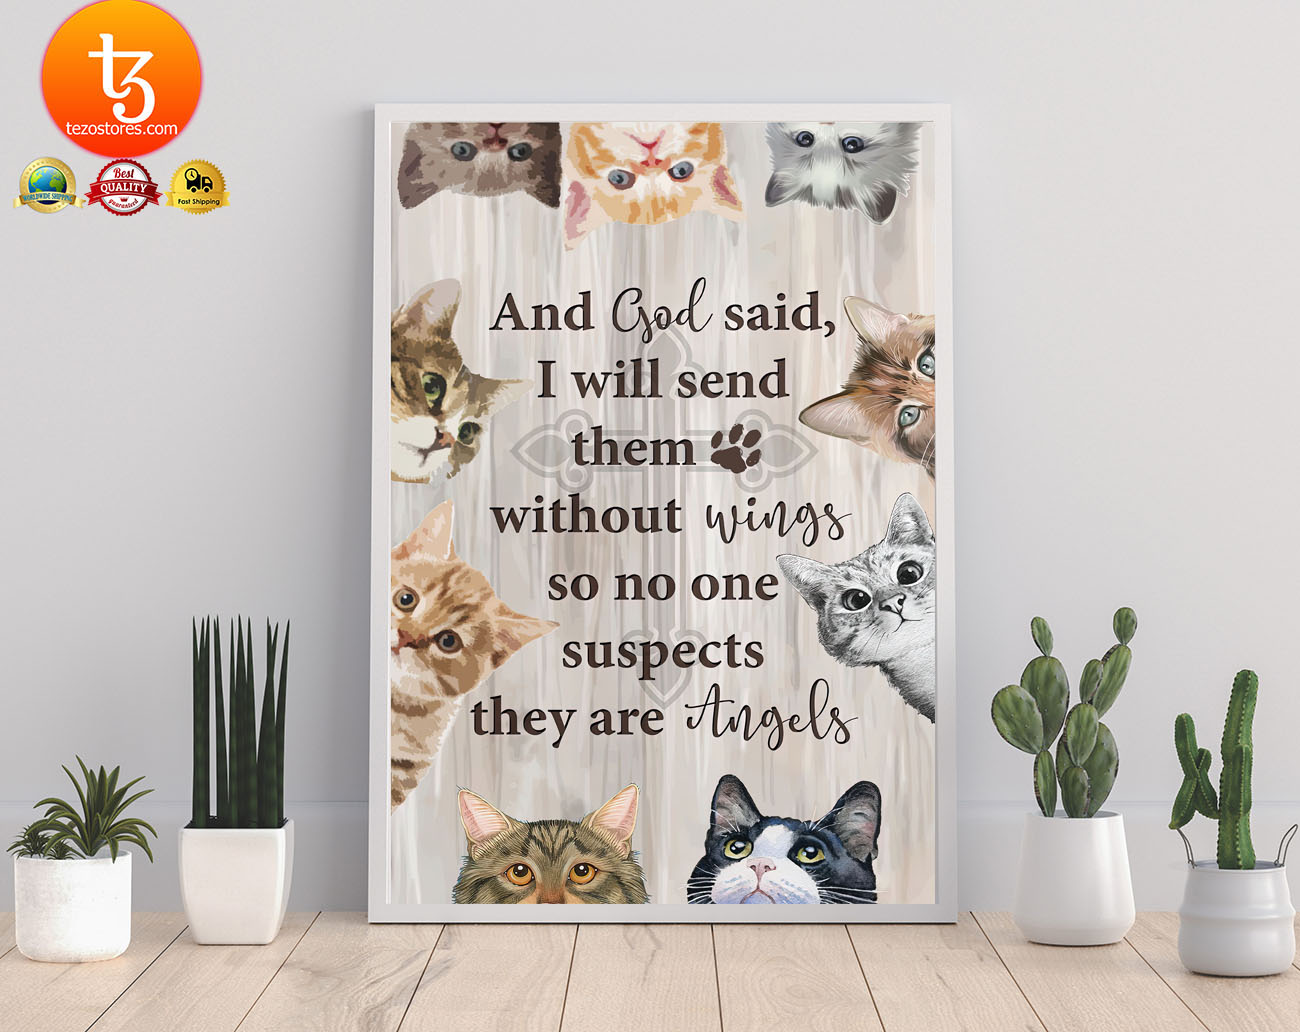 Cat and god said I will send them without wings so no one suspects they are angels poster2